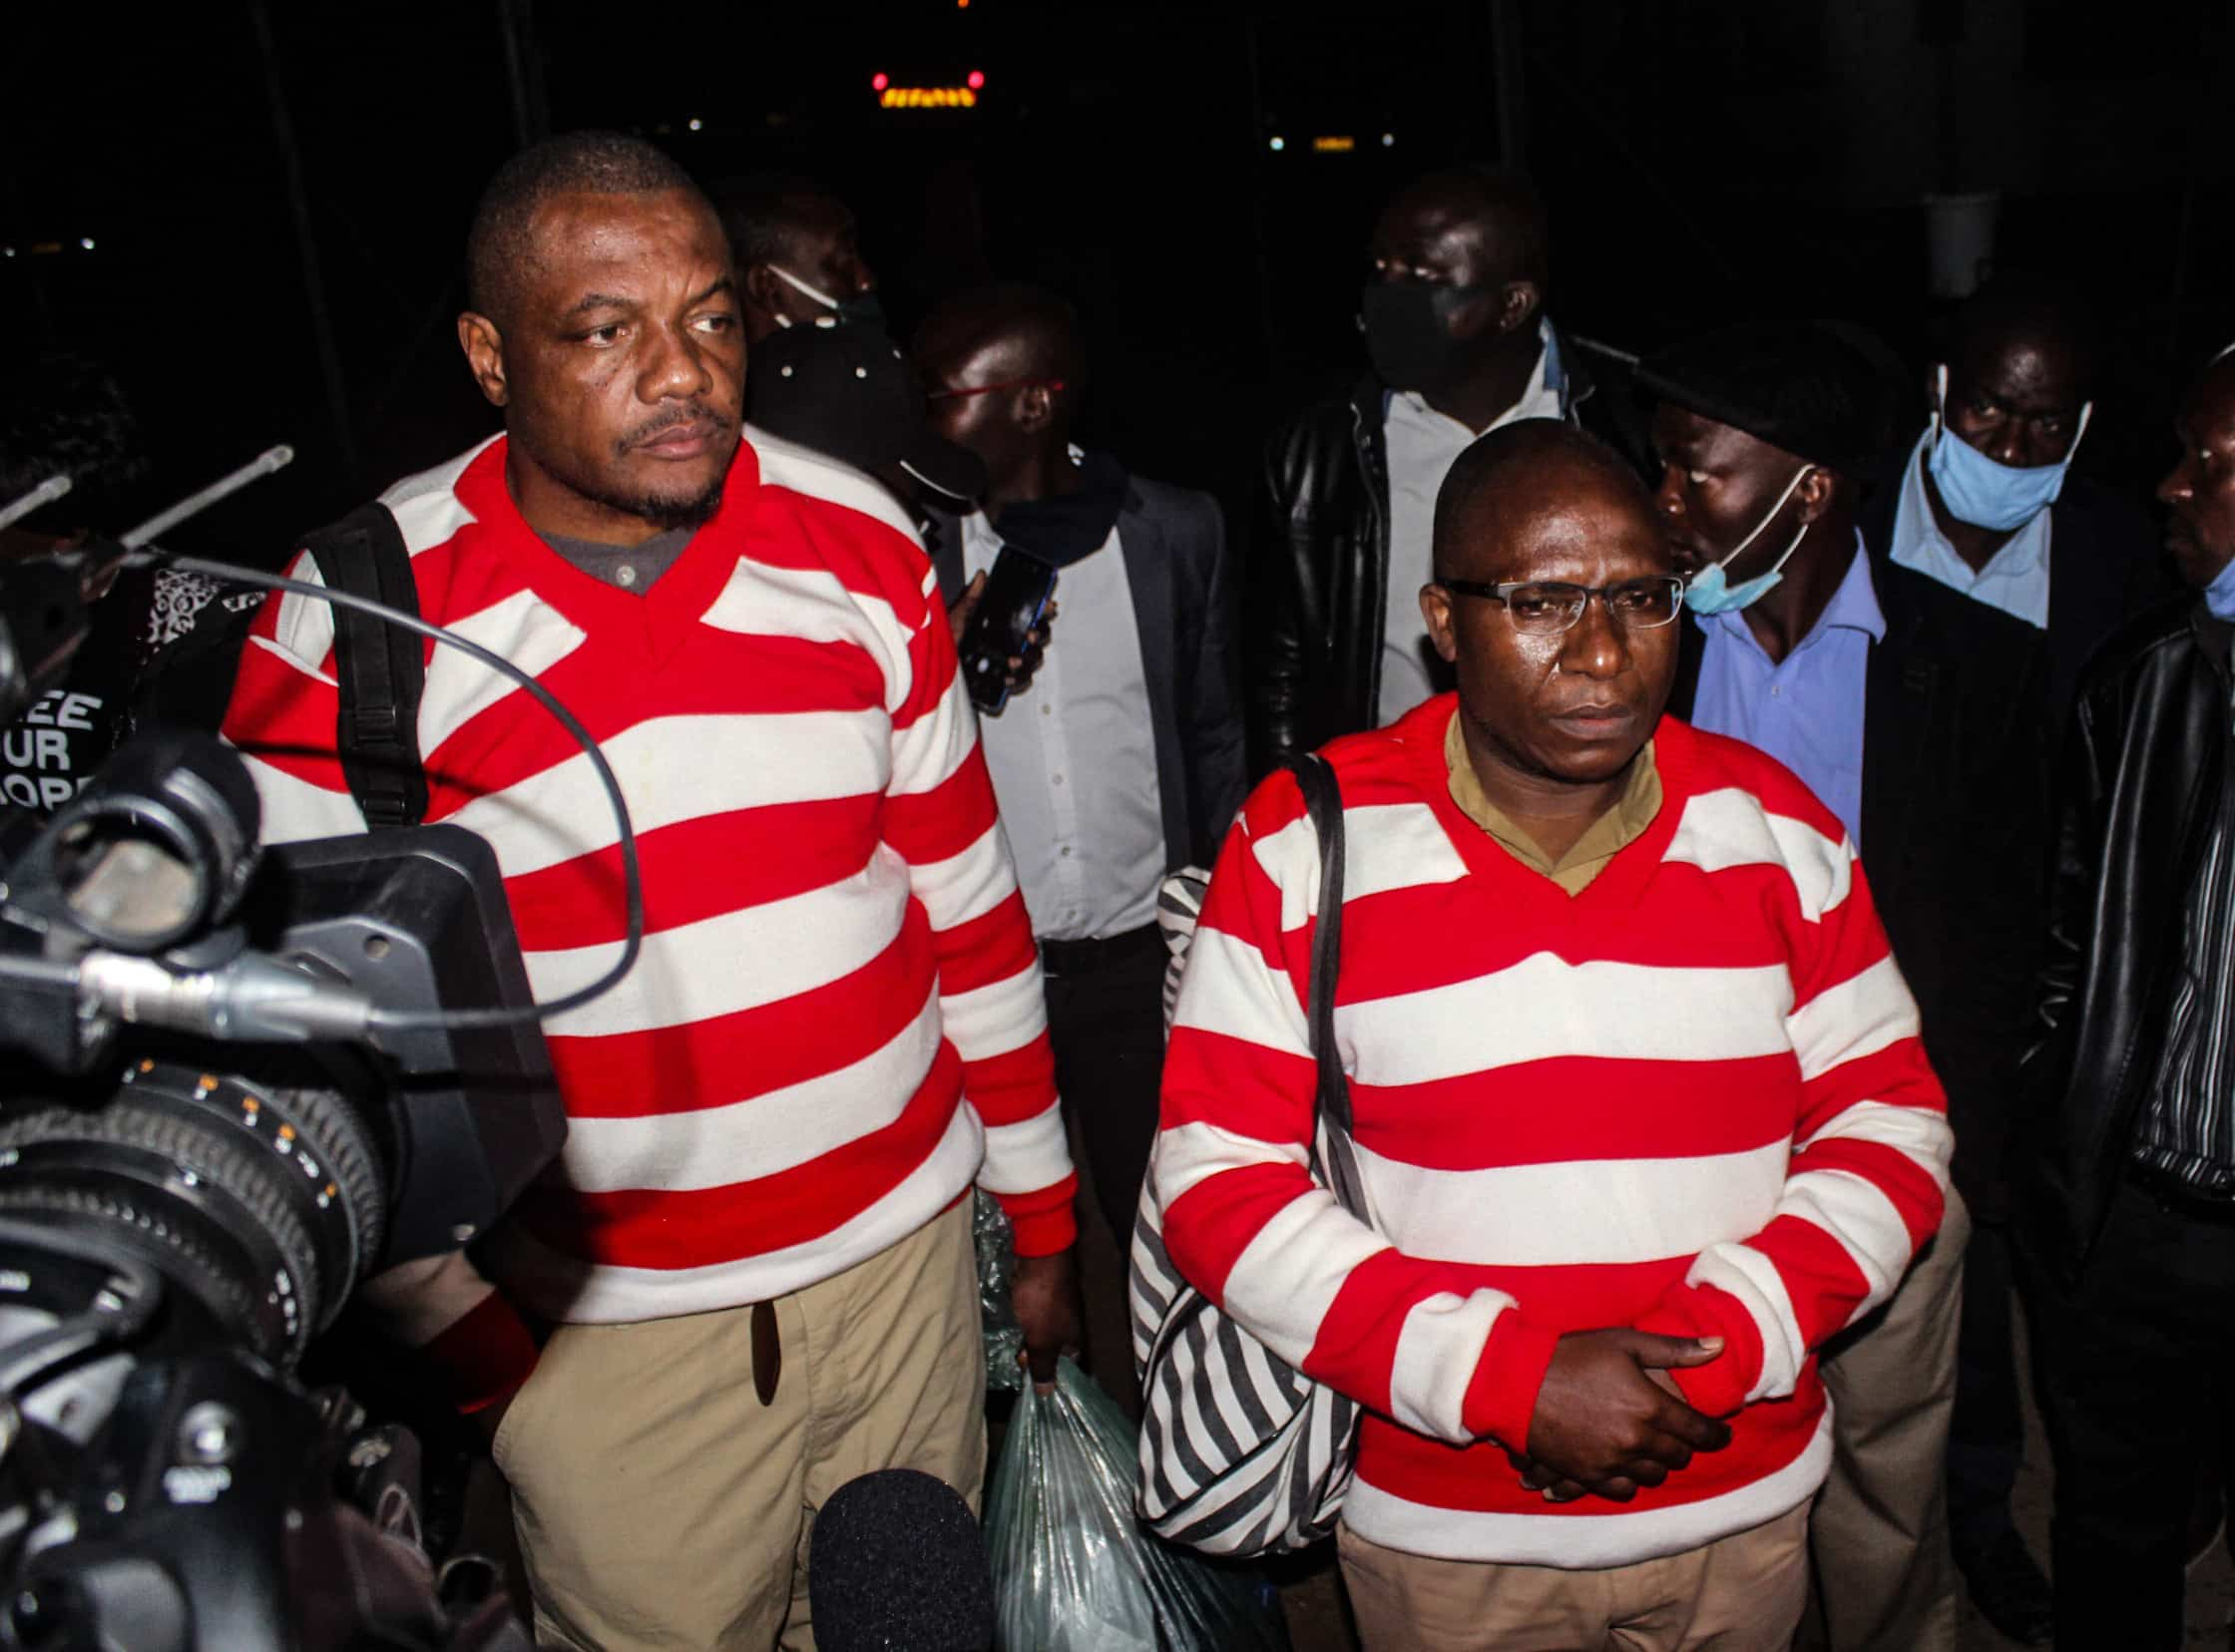 In Pictures: Hopewell and Ngarivhume Leaving Chikurubi Prison | 263Chat